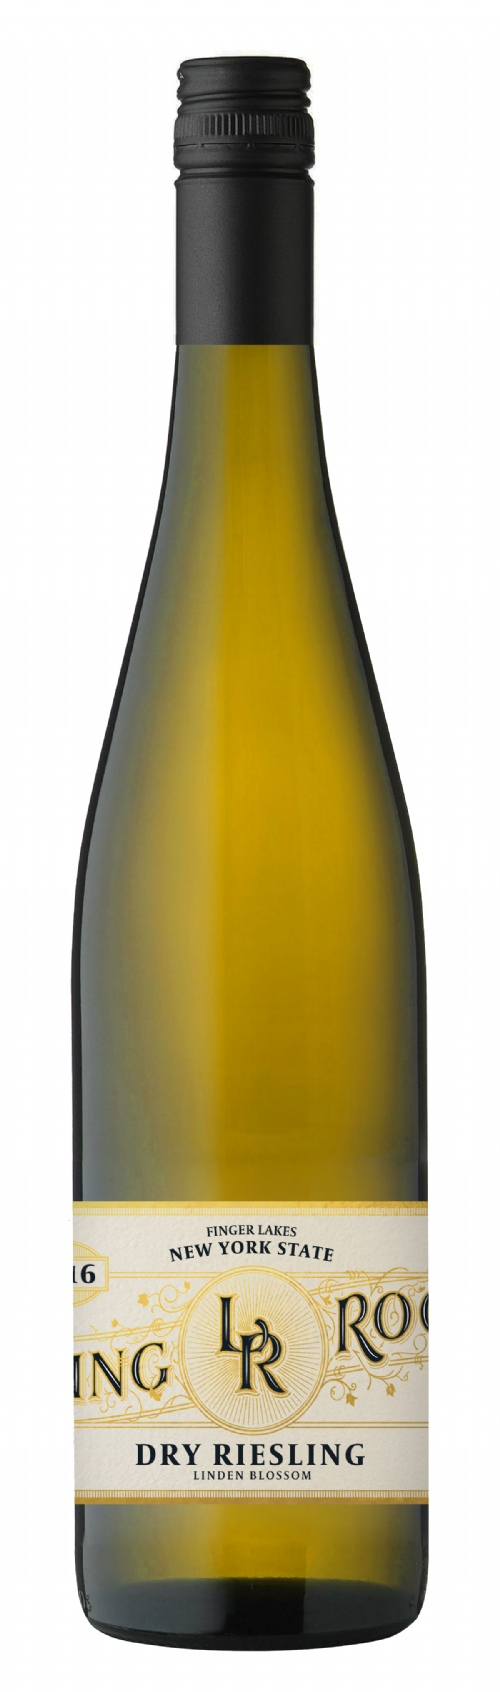 2018 Living Roots Dry Riesling 750ml